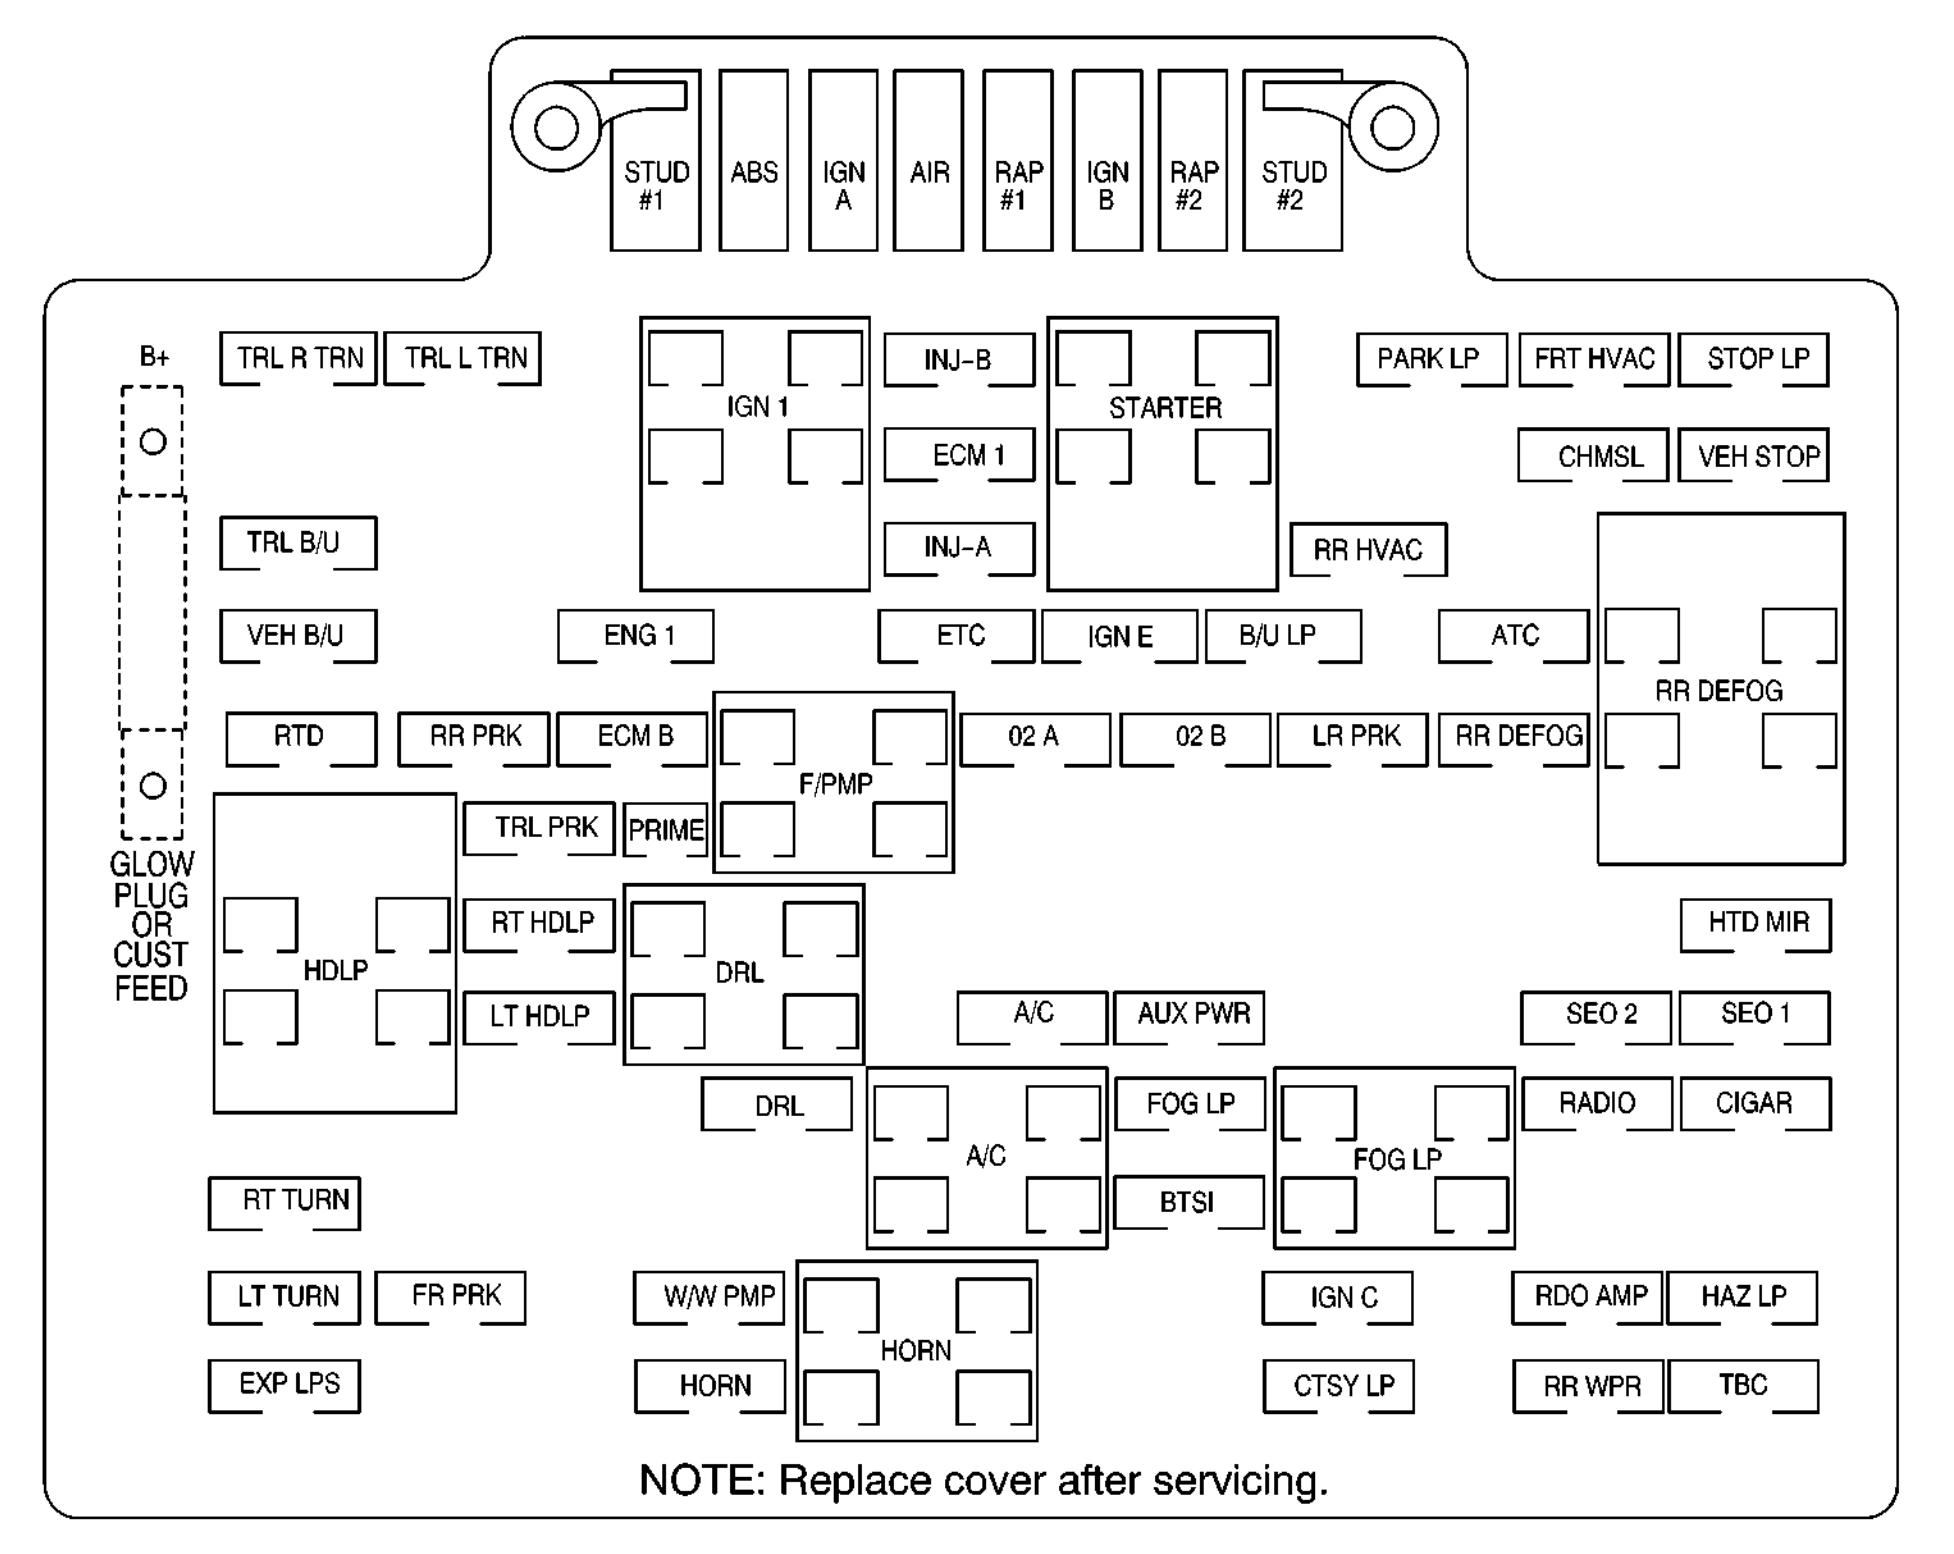 hight resolution of 2000 chevy tahoe fuse box diagram wiring diagram todays 2002 rsx fuse diagram 2002 tahoe fuse diagram